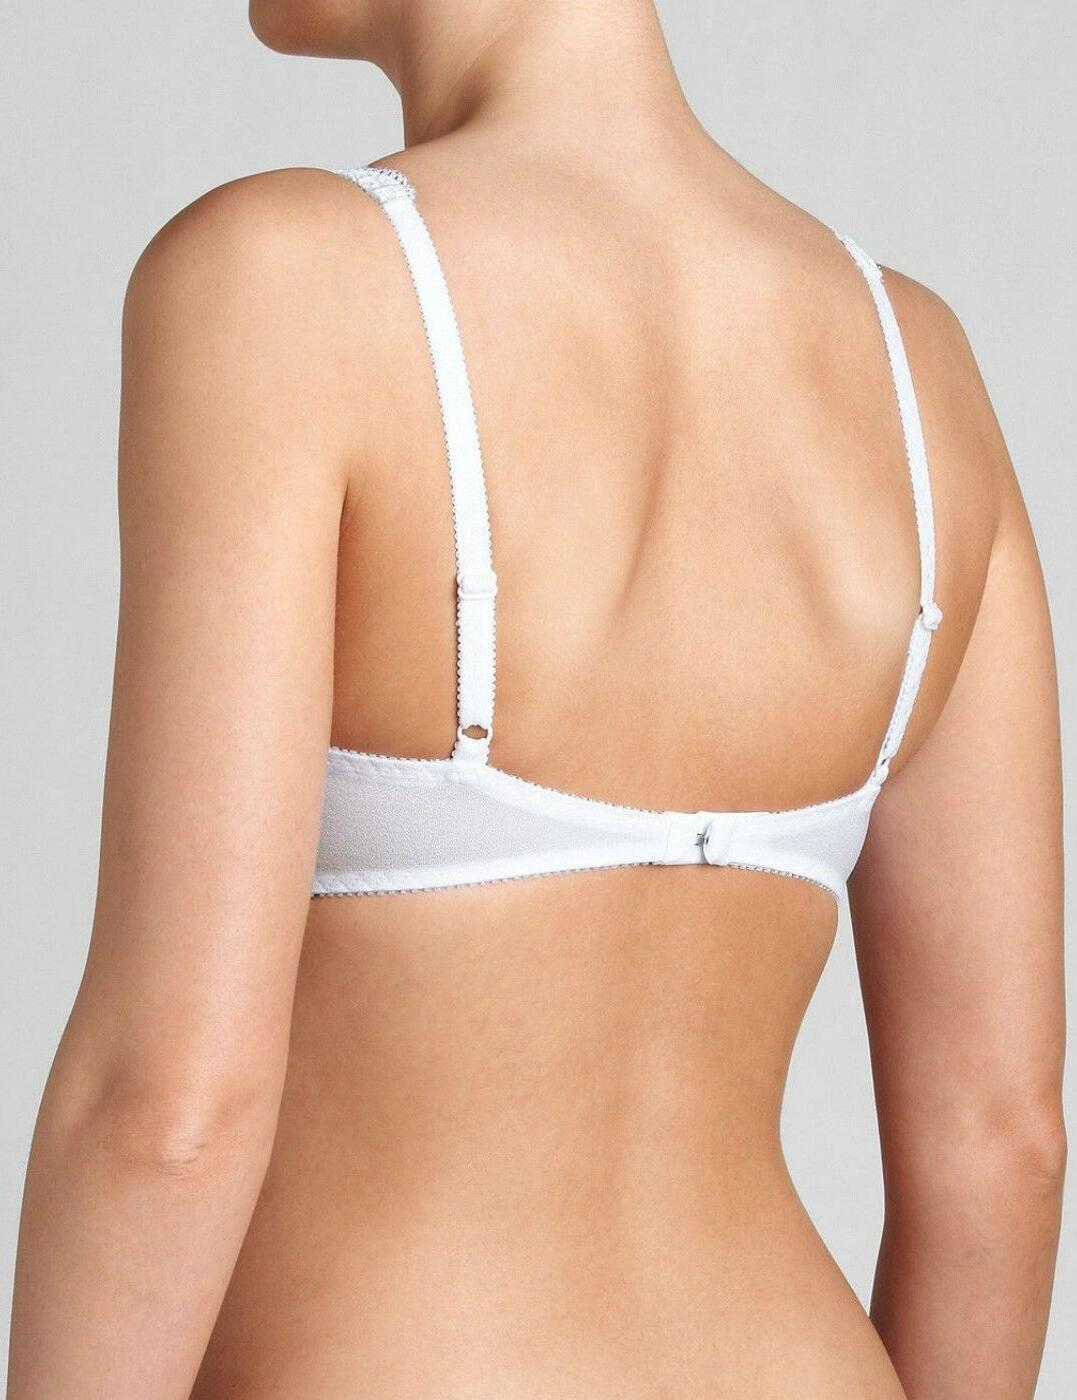 Triumph-Amourette-300-WHP-Underwired-Half-Cup-Padded-Bra-10166798